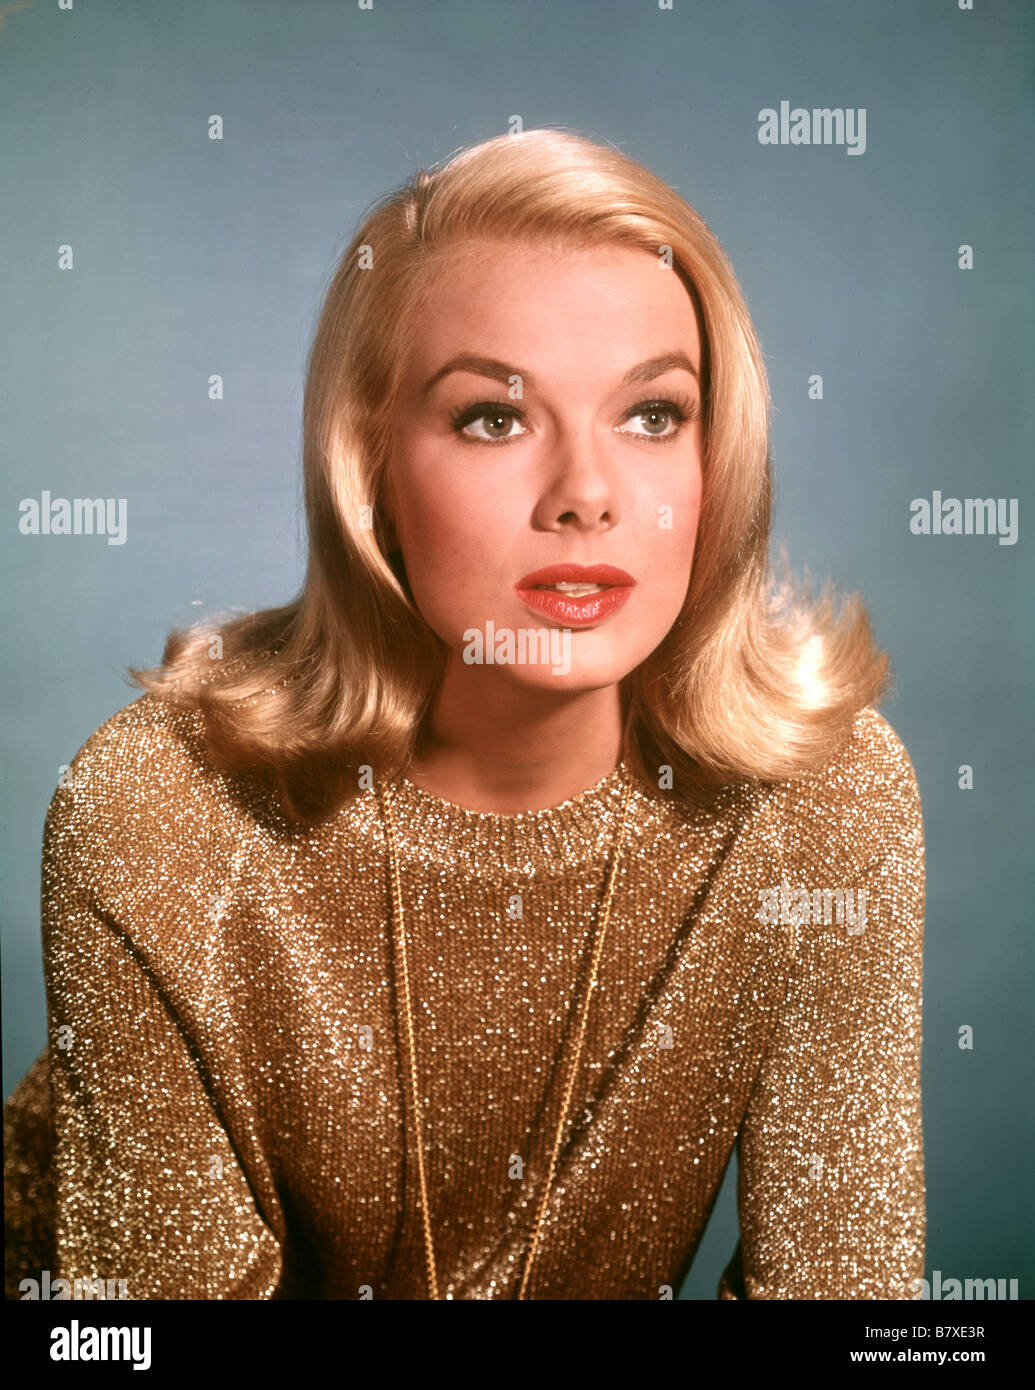 Leslie Parrish Leslie Parrish new photo